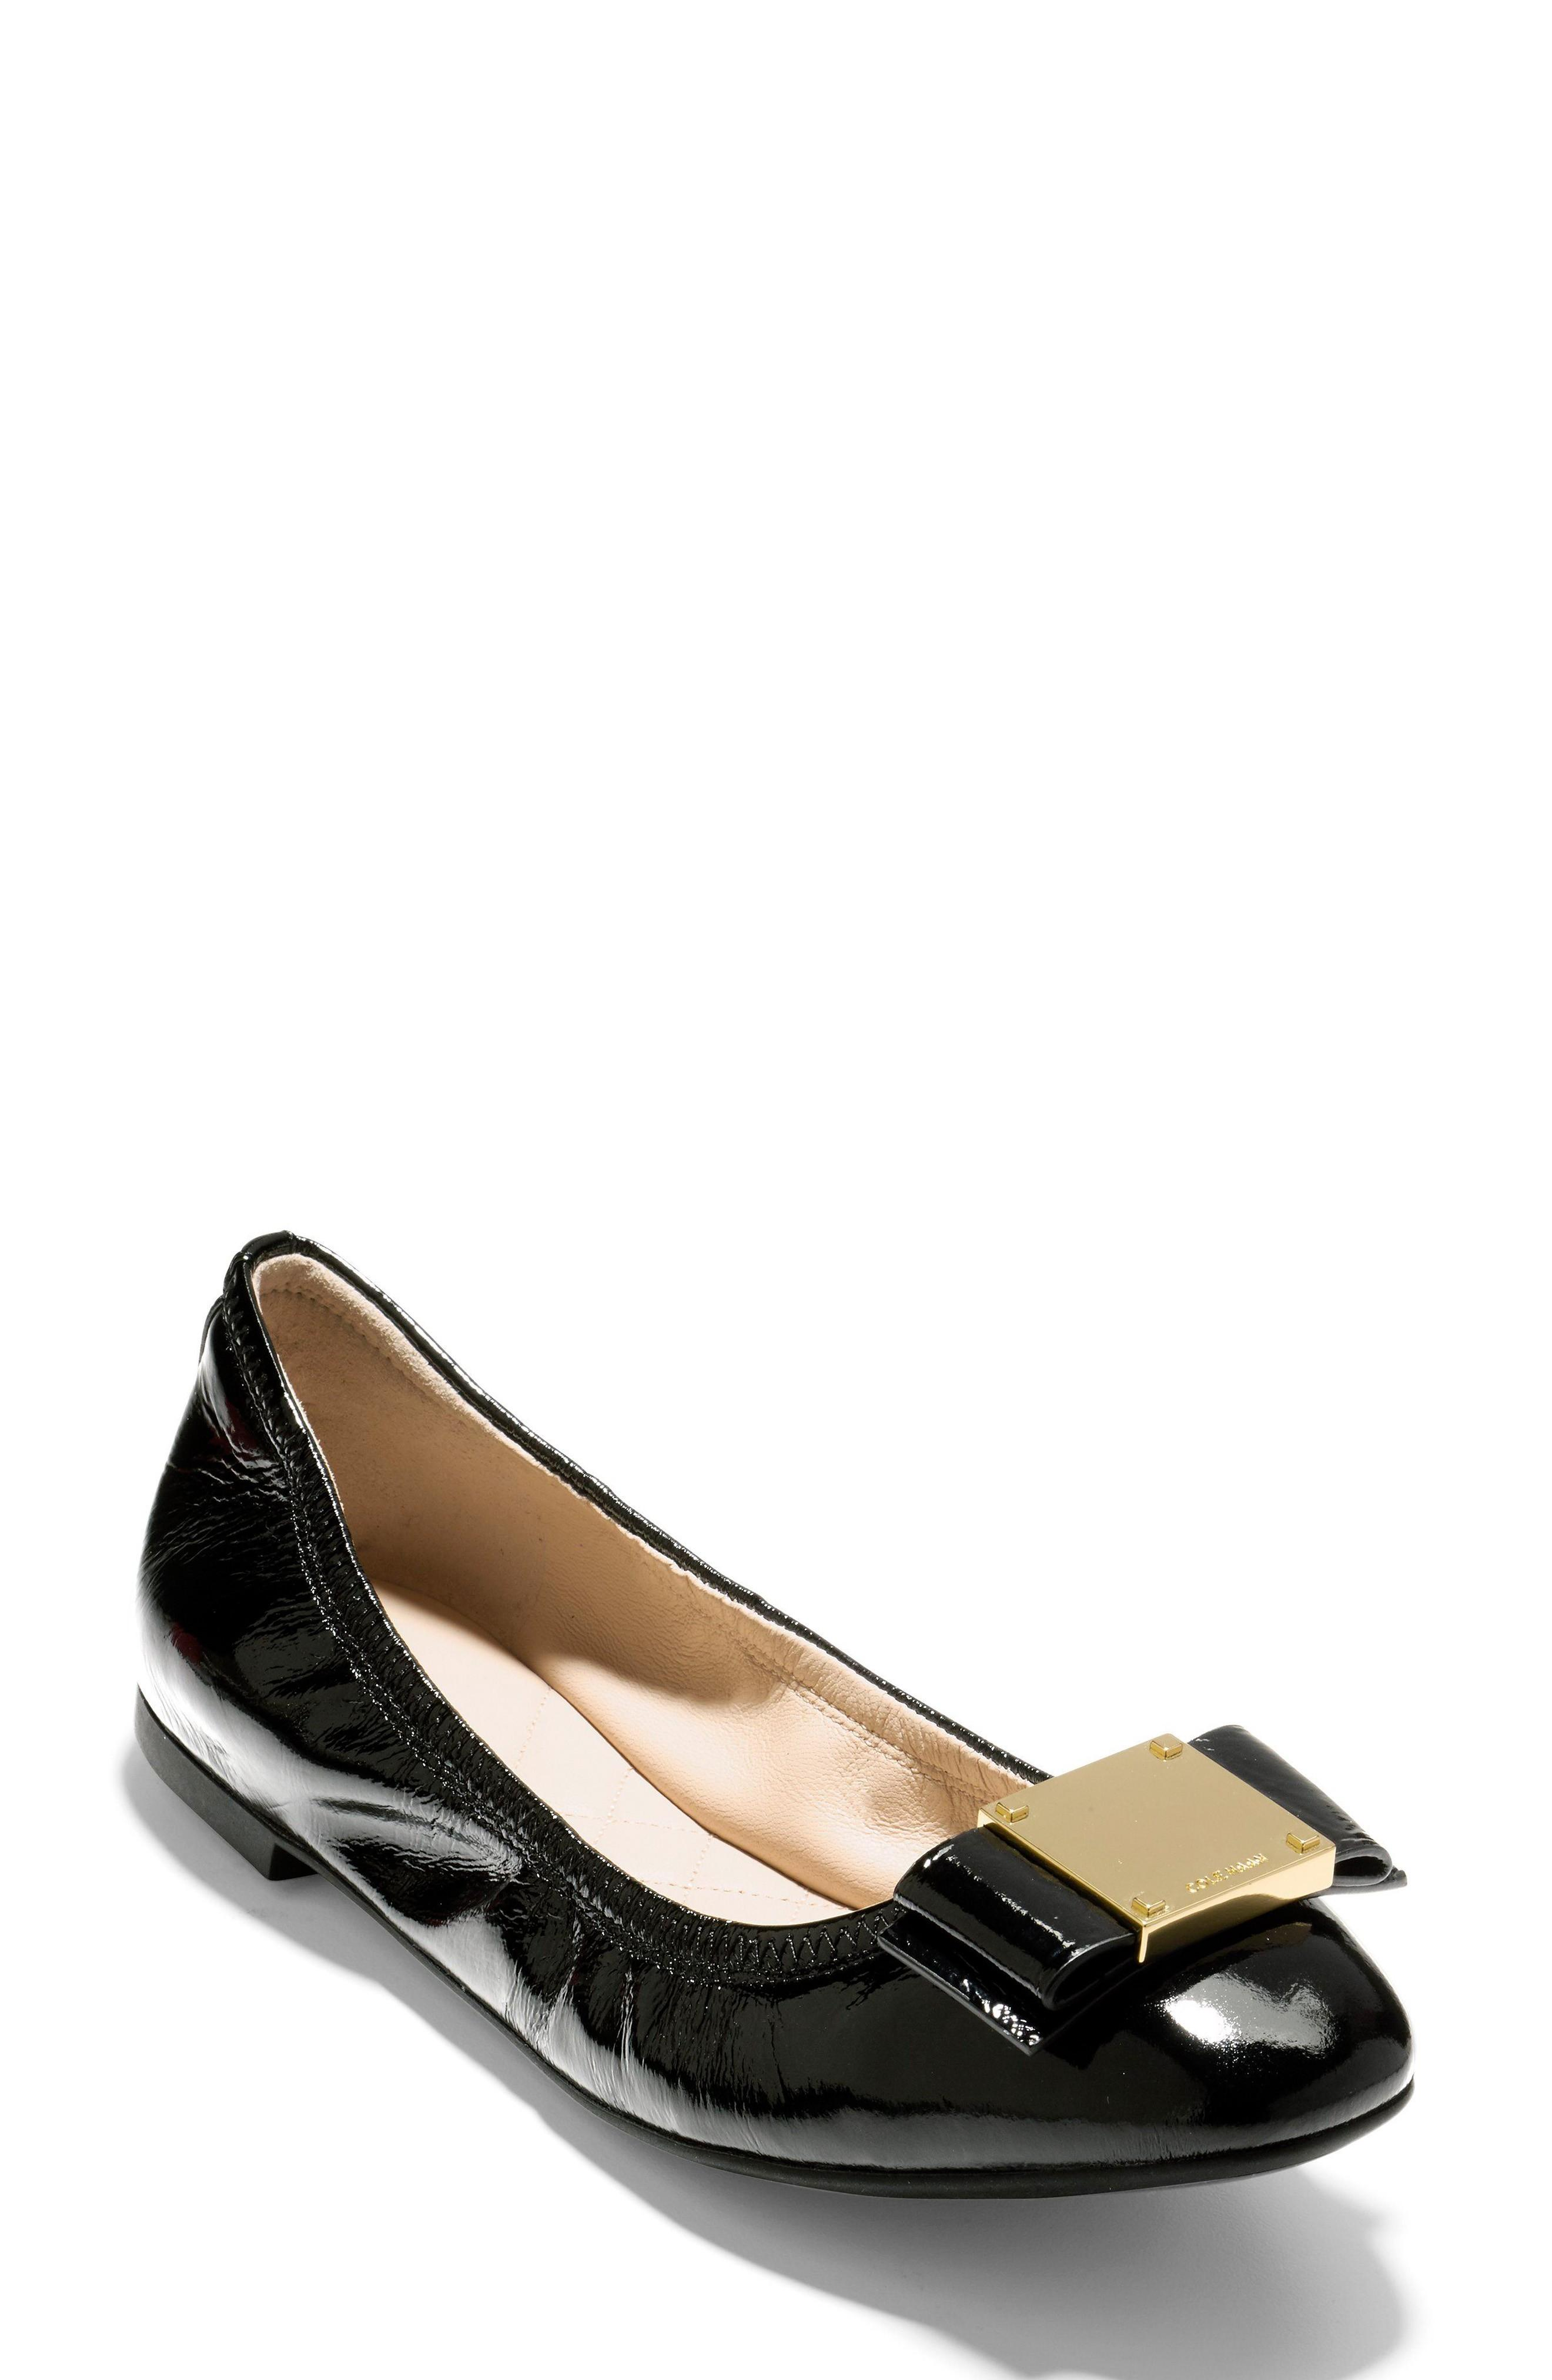 51f09e4d9a5 Cole Haan Tali Modern Bow Ballet Flat In Black. SIZE   FIT INFORMATION